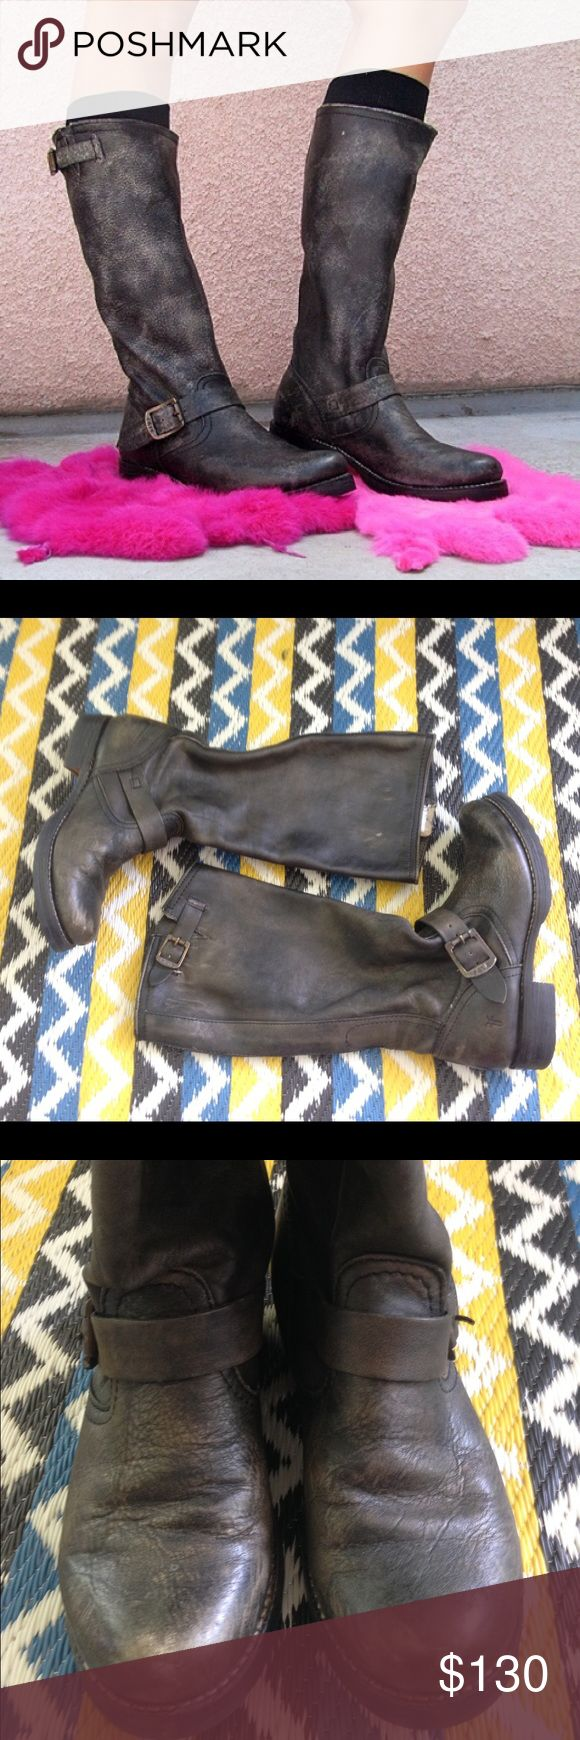 Frye Veronica pull on boots Size 8 great used condition. distressed blackish gray color. Perfect fall boot for every outfit. Frye Shoes Heeled Boots